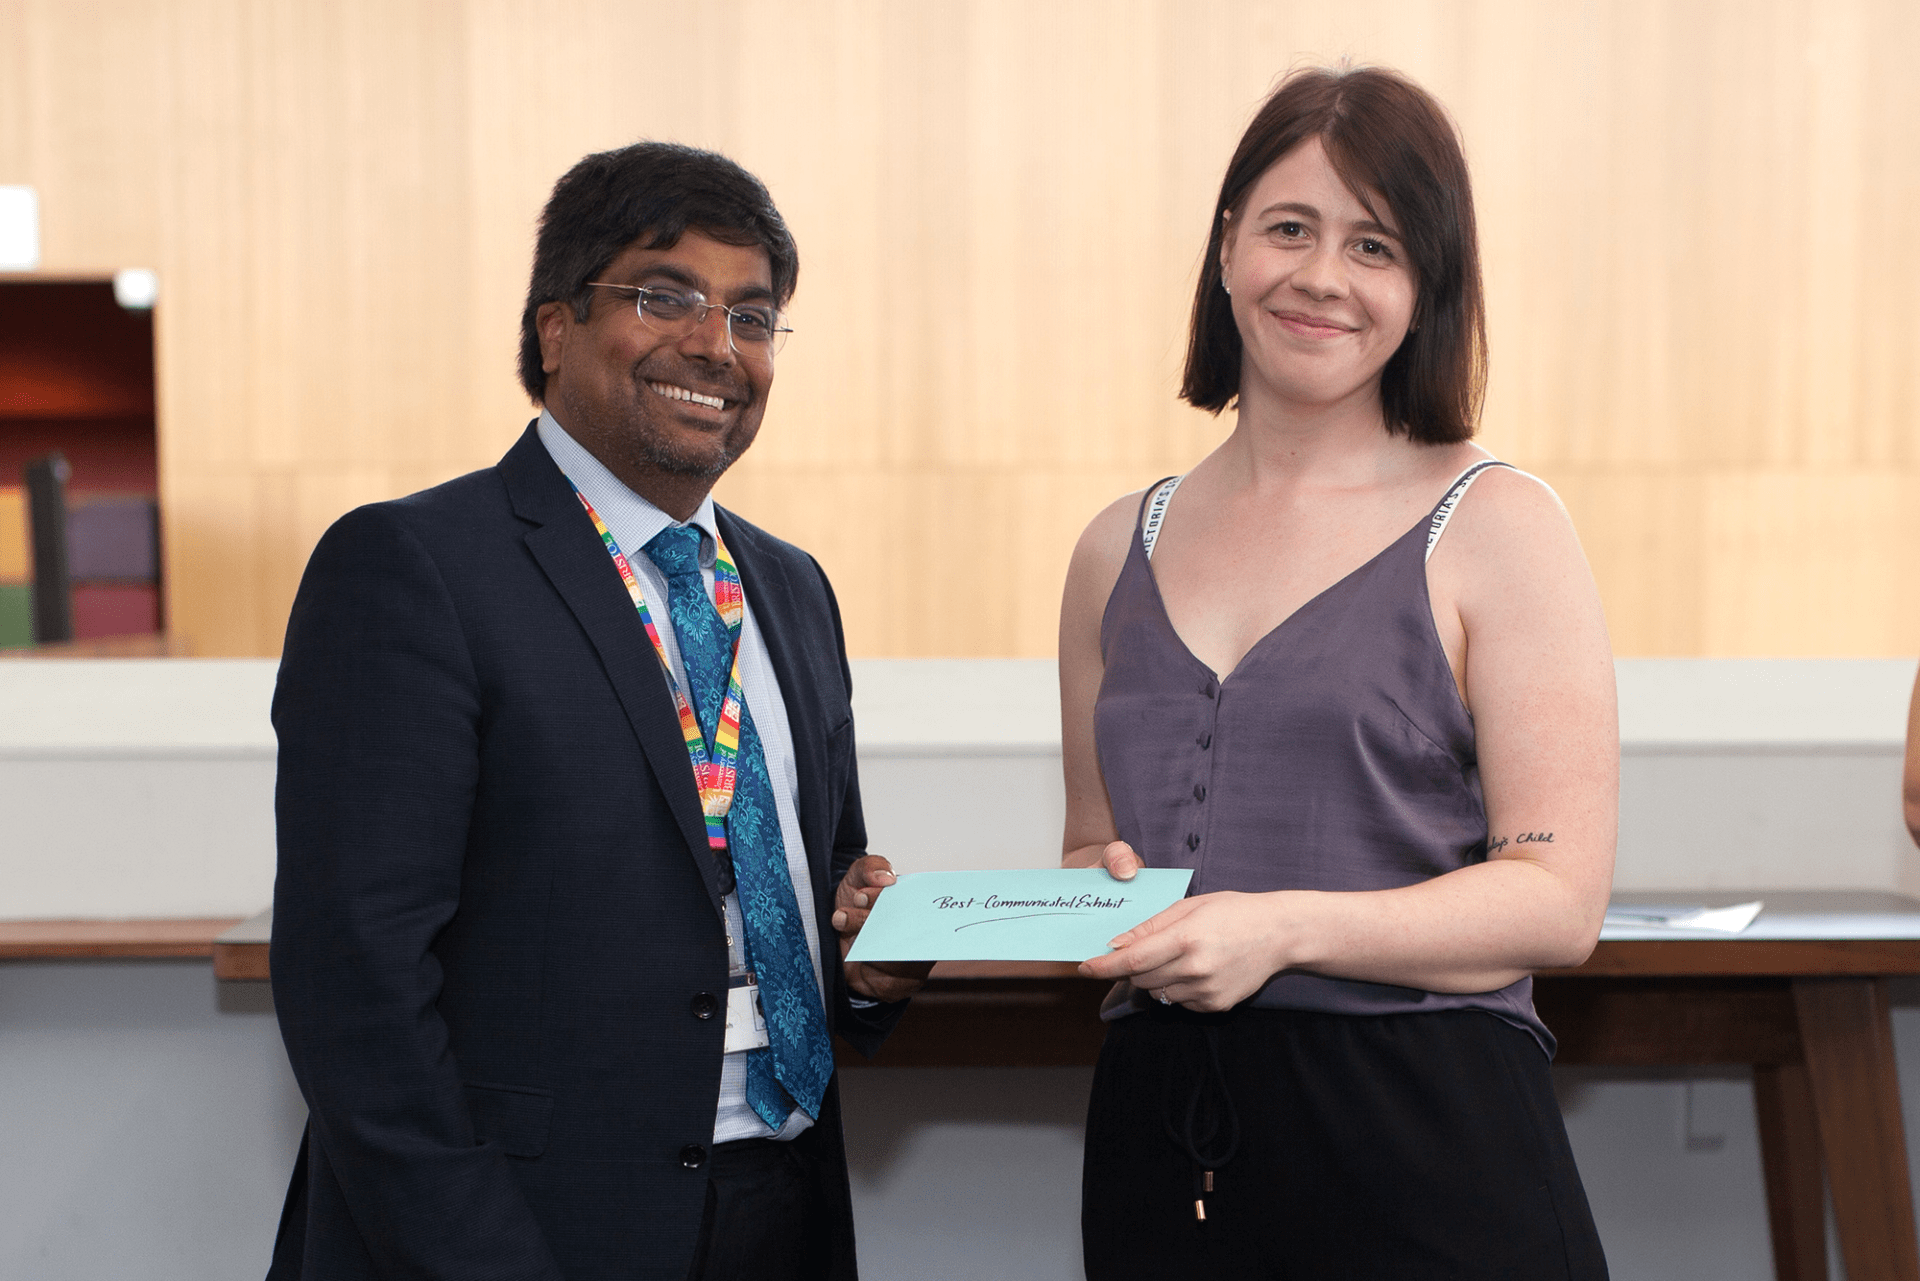 Professor Nishan Canagarajah presenting Laura Fox with the 'Best-Communicated Exhibit' prize